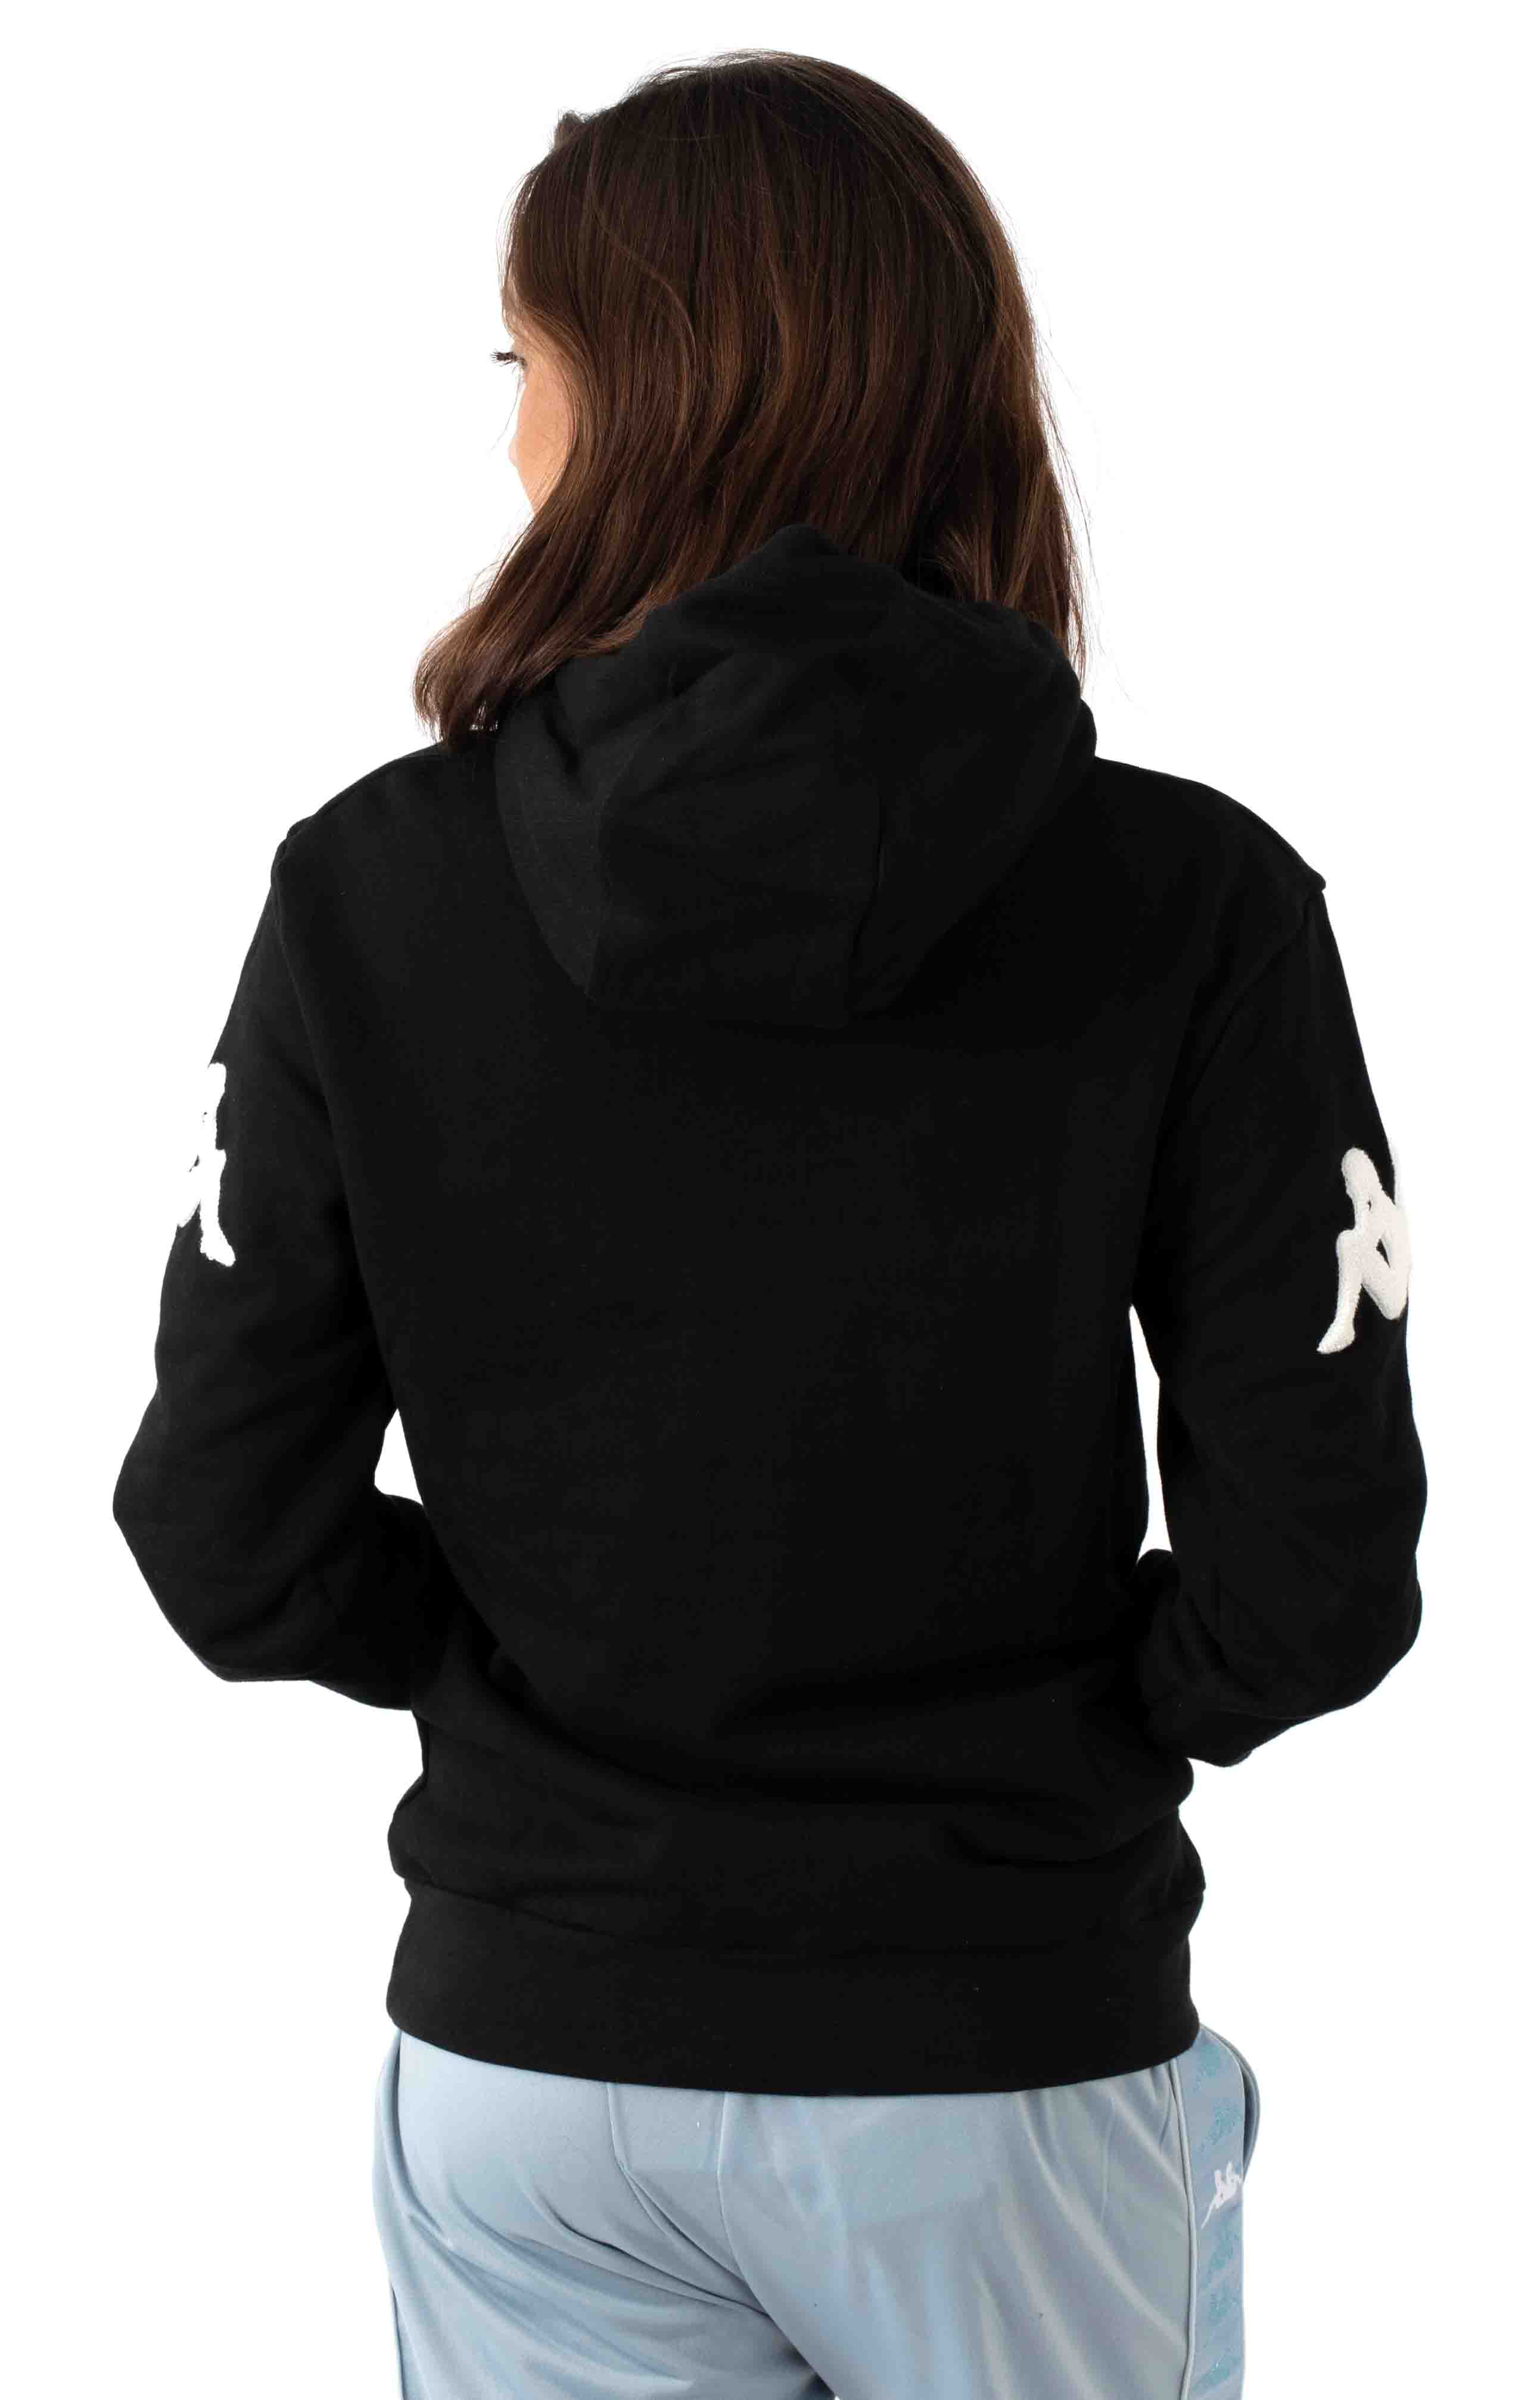 Authentic Bluvi Pullover Hoodie - Black 3